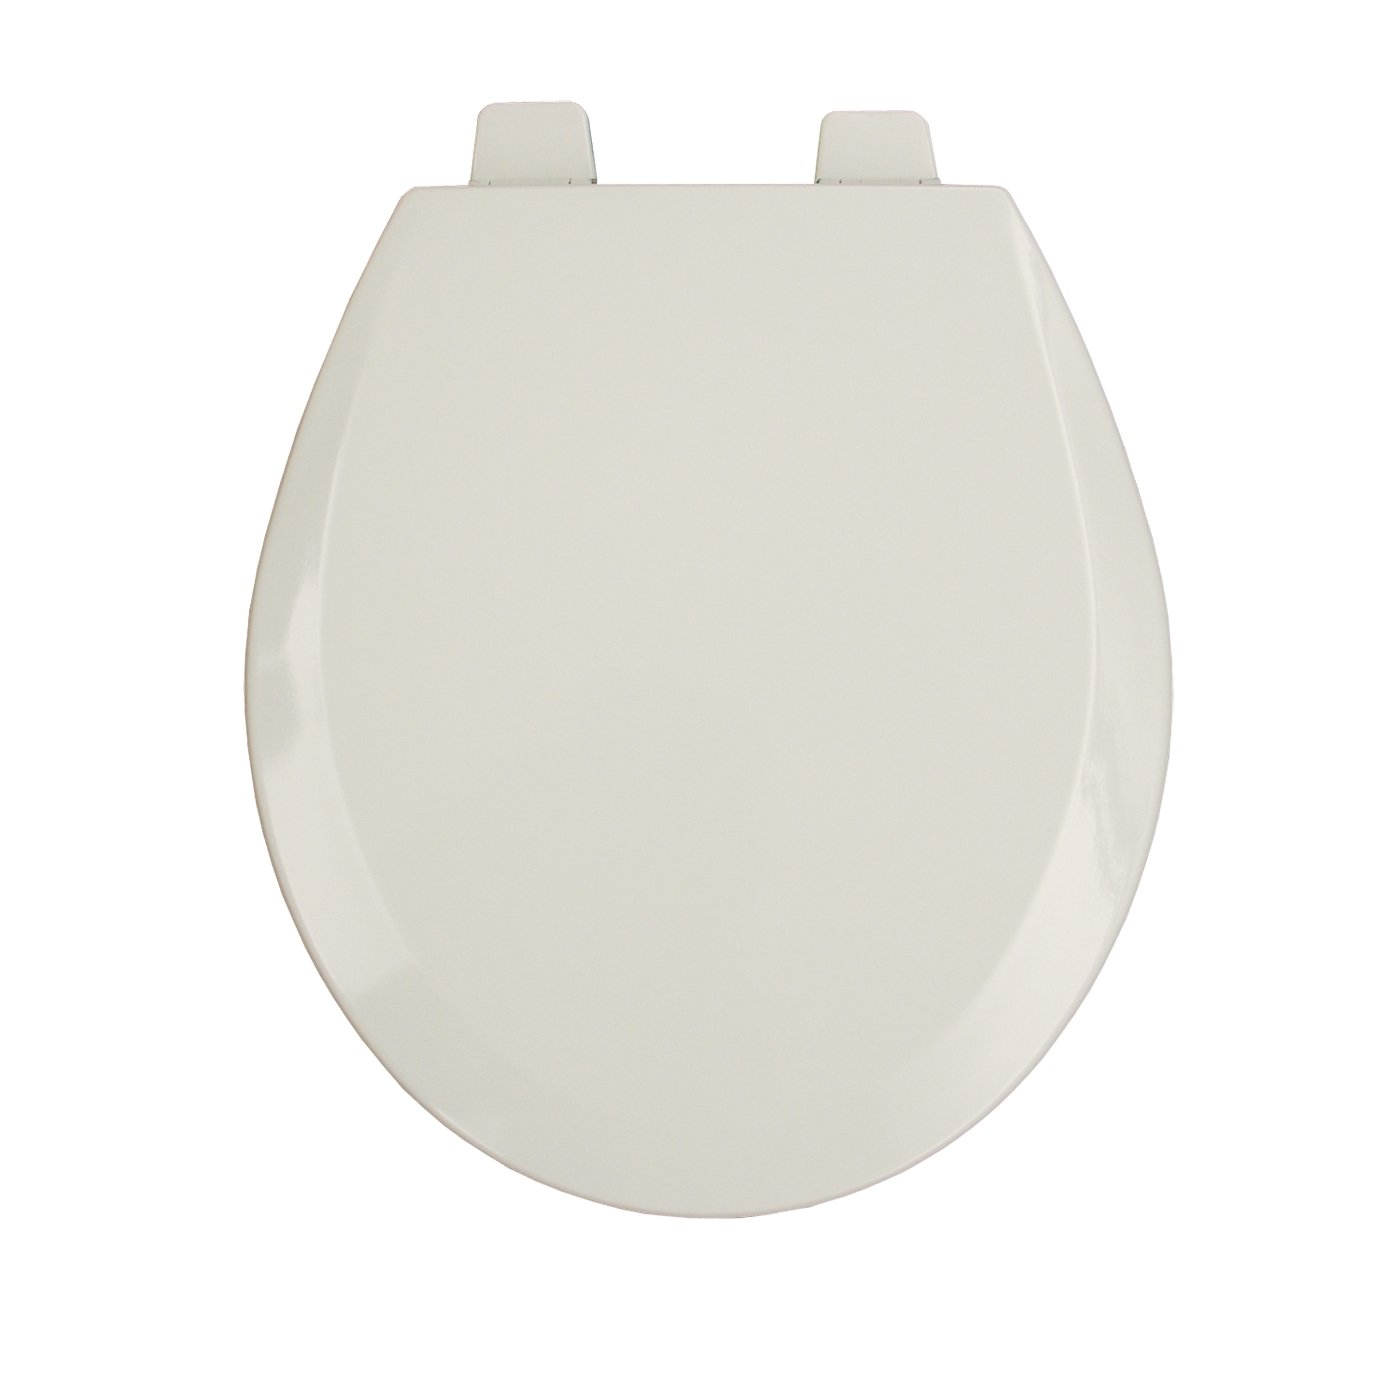 Bemis 550PRO006 Molded Wood Open Front With Cover Round Toilet Seat Pro Hinges Bone